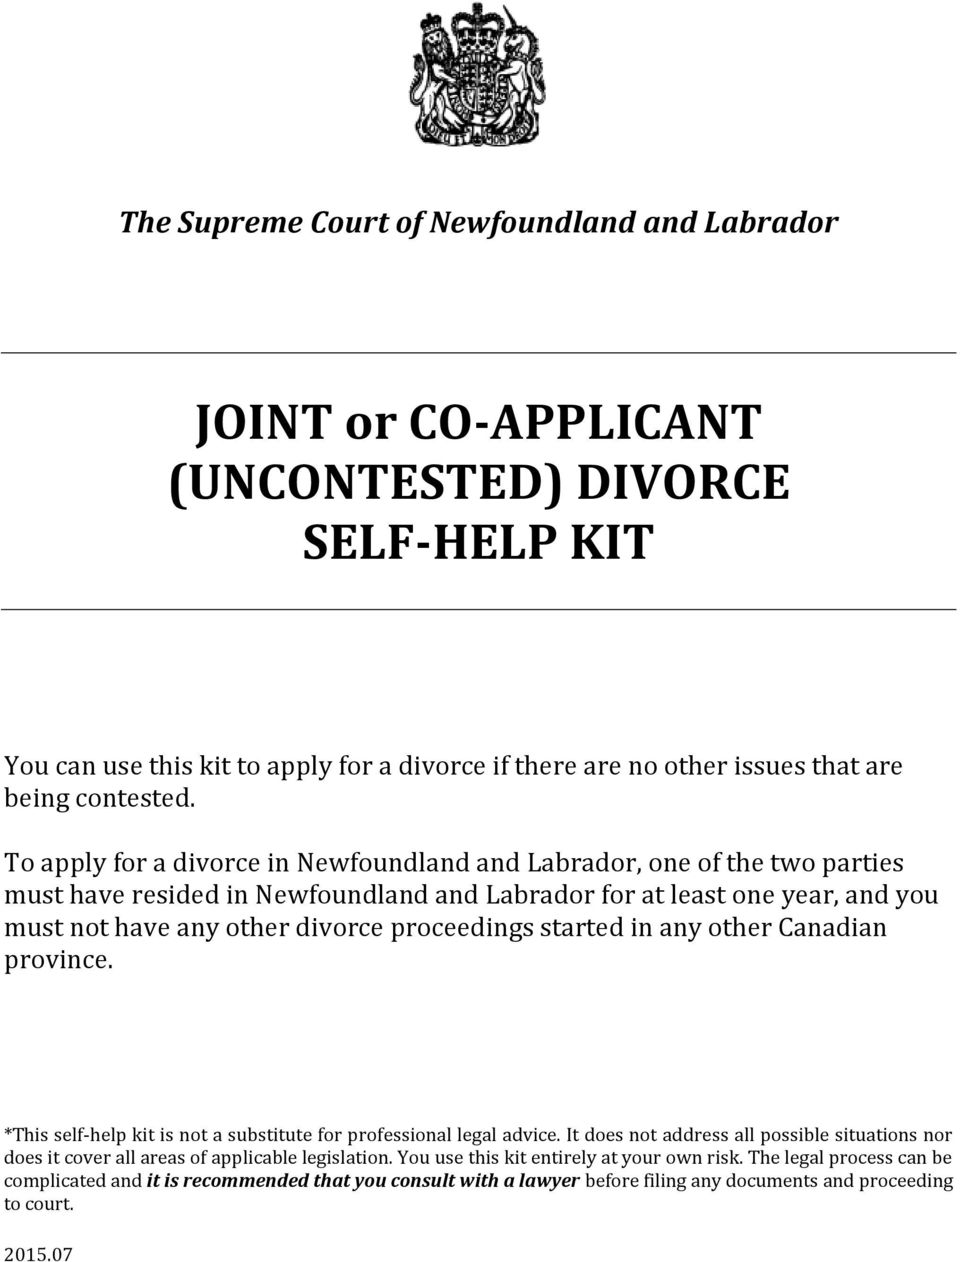 Joint or co applicant uncontested divorce self help kit pdf to apply for a divorce in newfoundland and labrador one of the two parties must solutioingenieria Choice Image